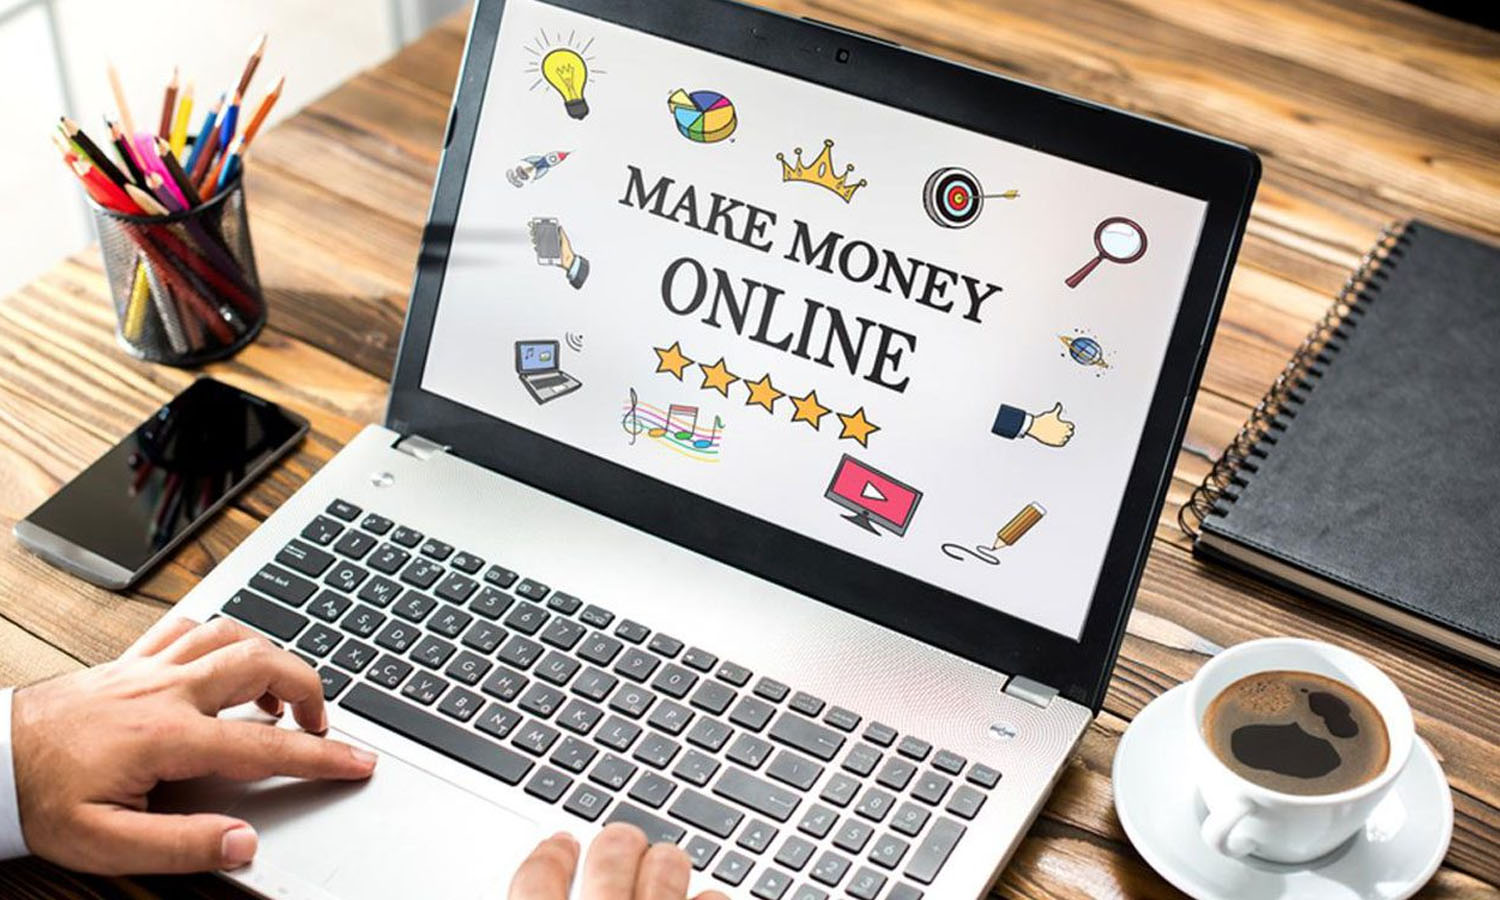 Top 8 Online Money Making Ideas